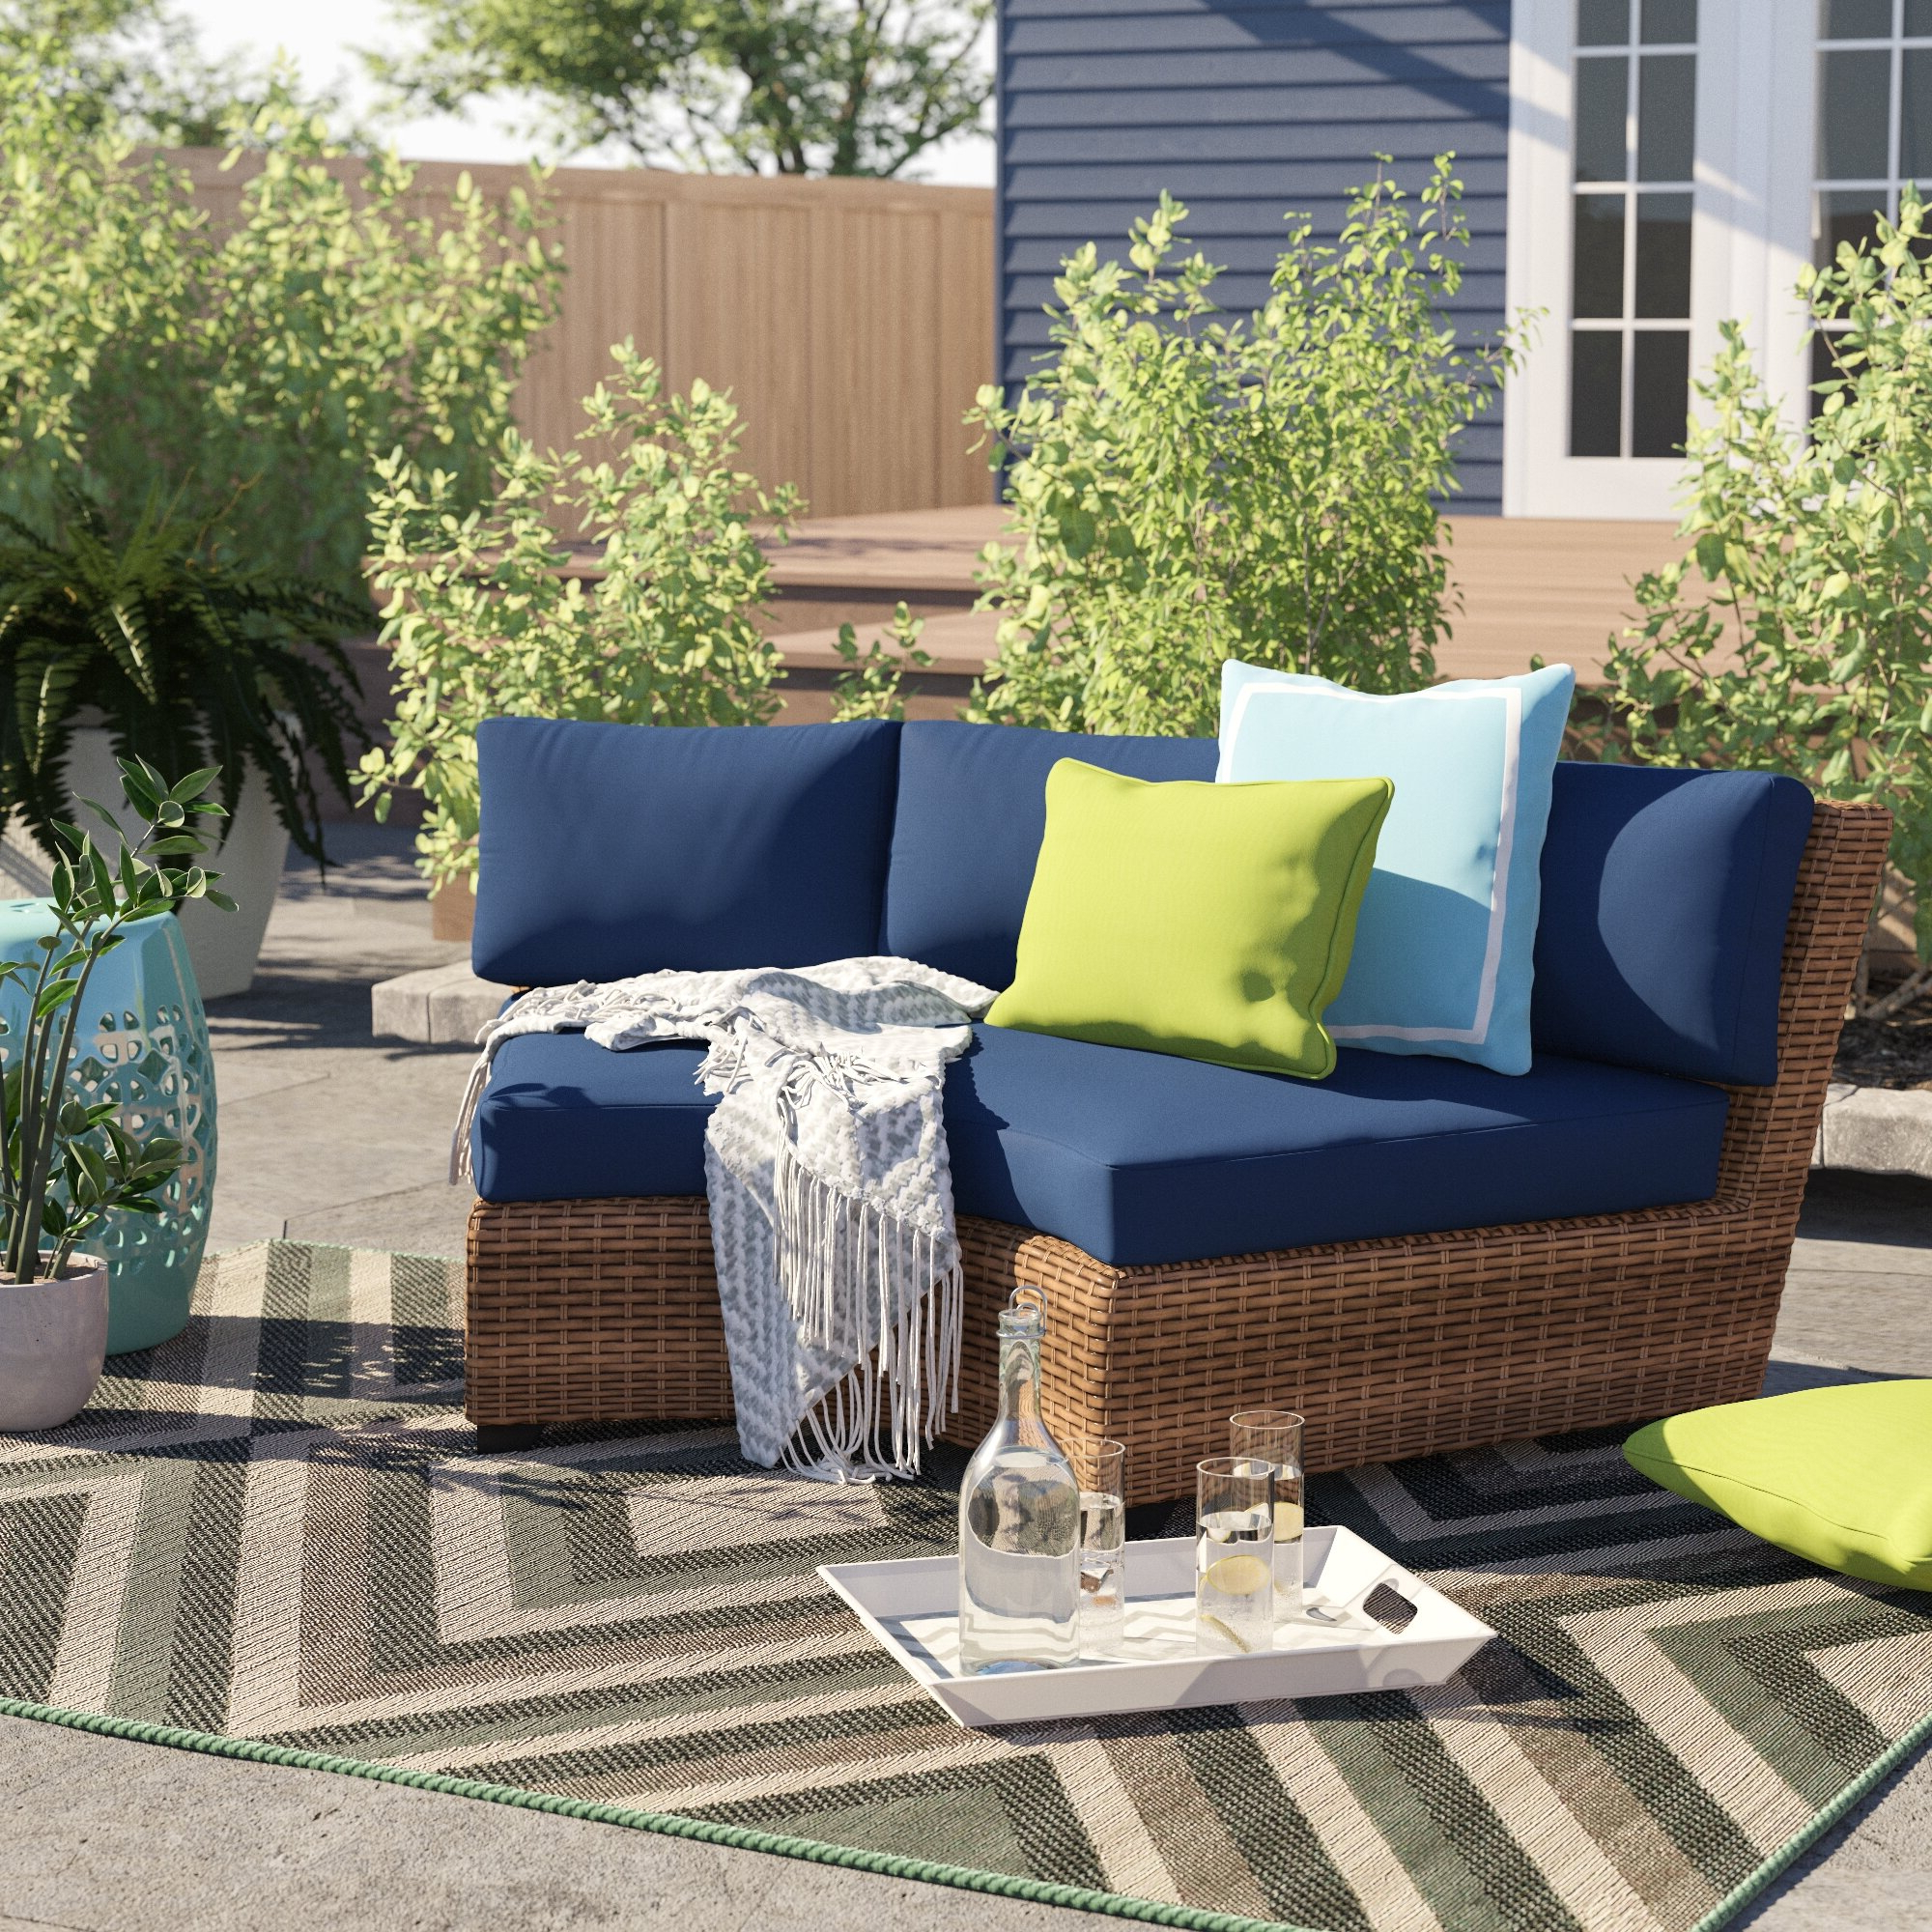 2020 Boyce Outdoor Patio Sectionals With Cushions Regarding Waterbury Curved Armless Patio Sofa With Cushions (View 23 of 25)